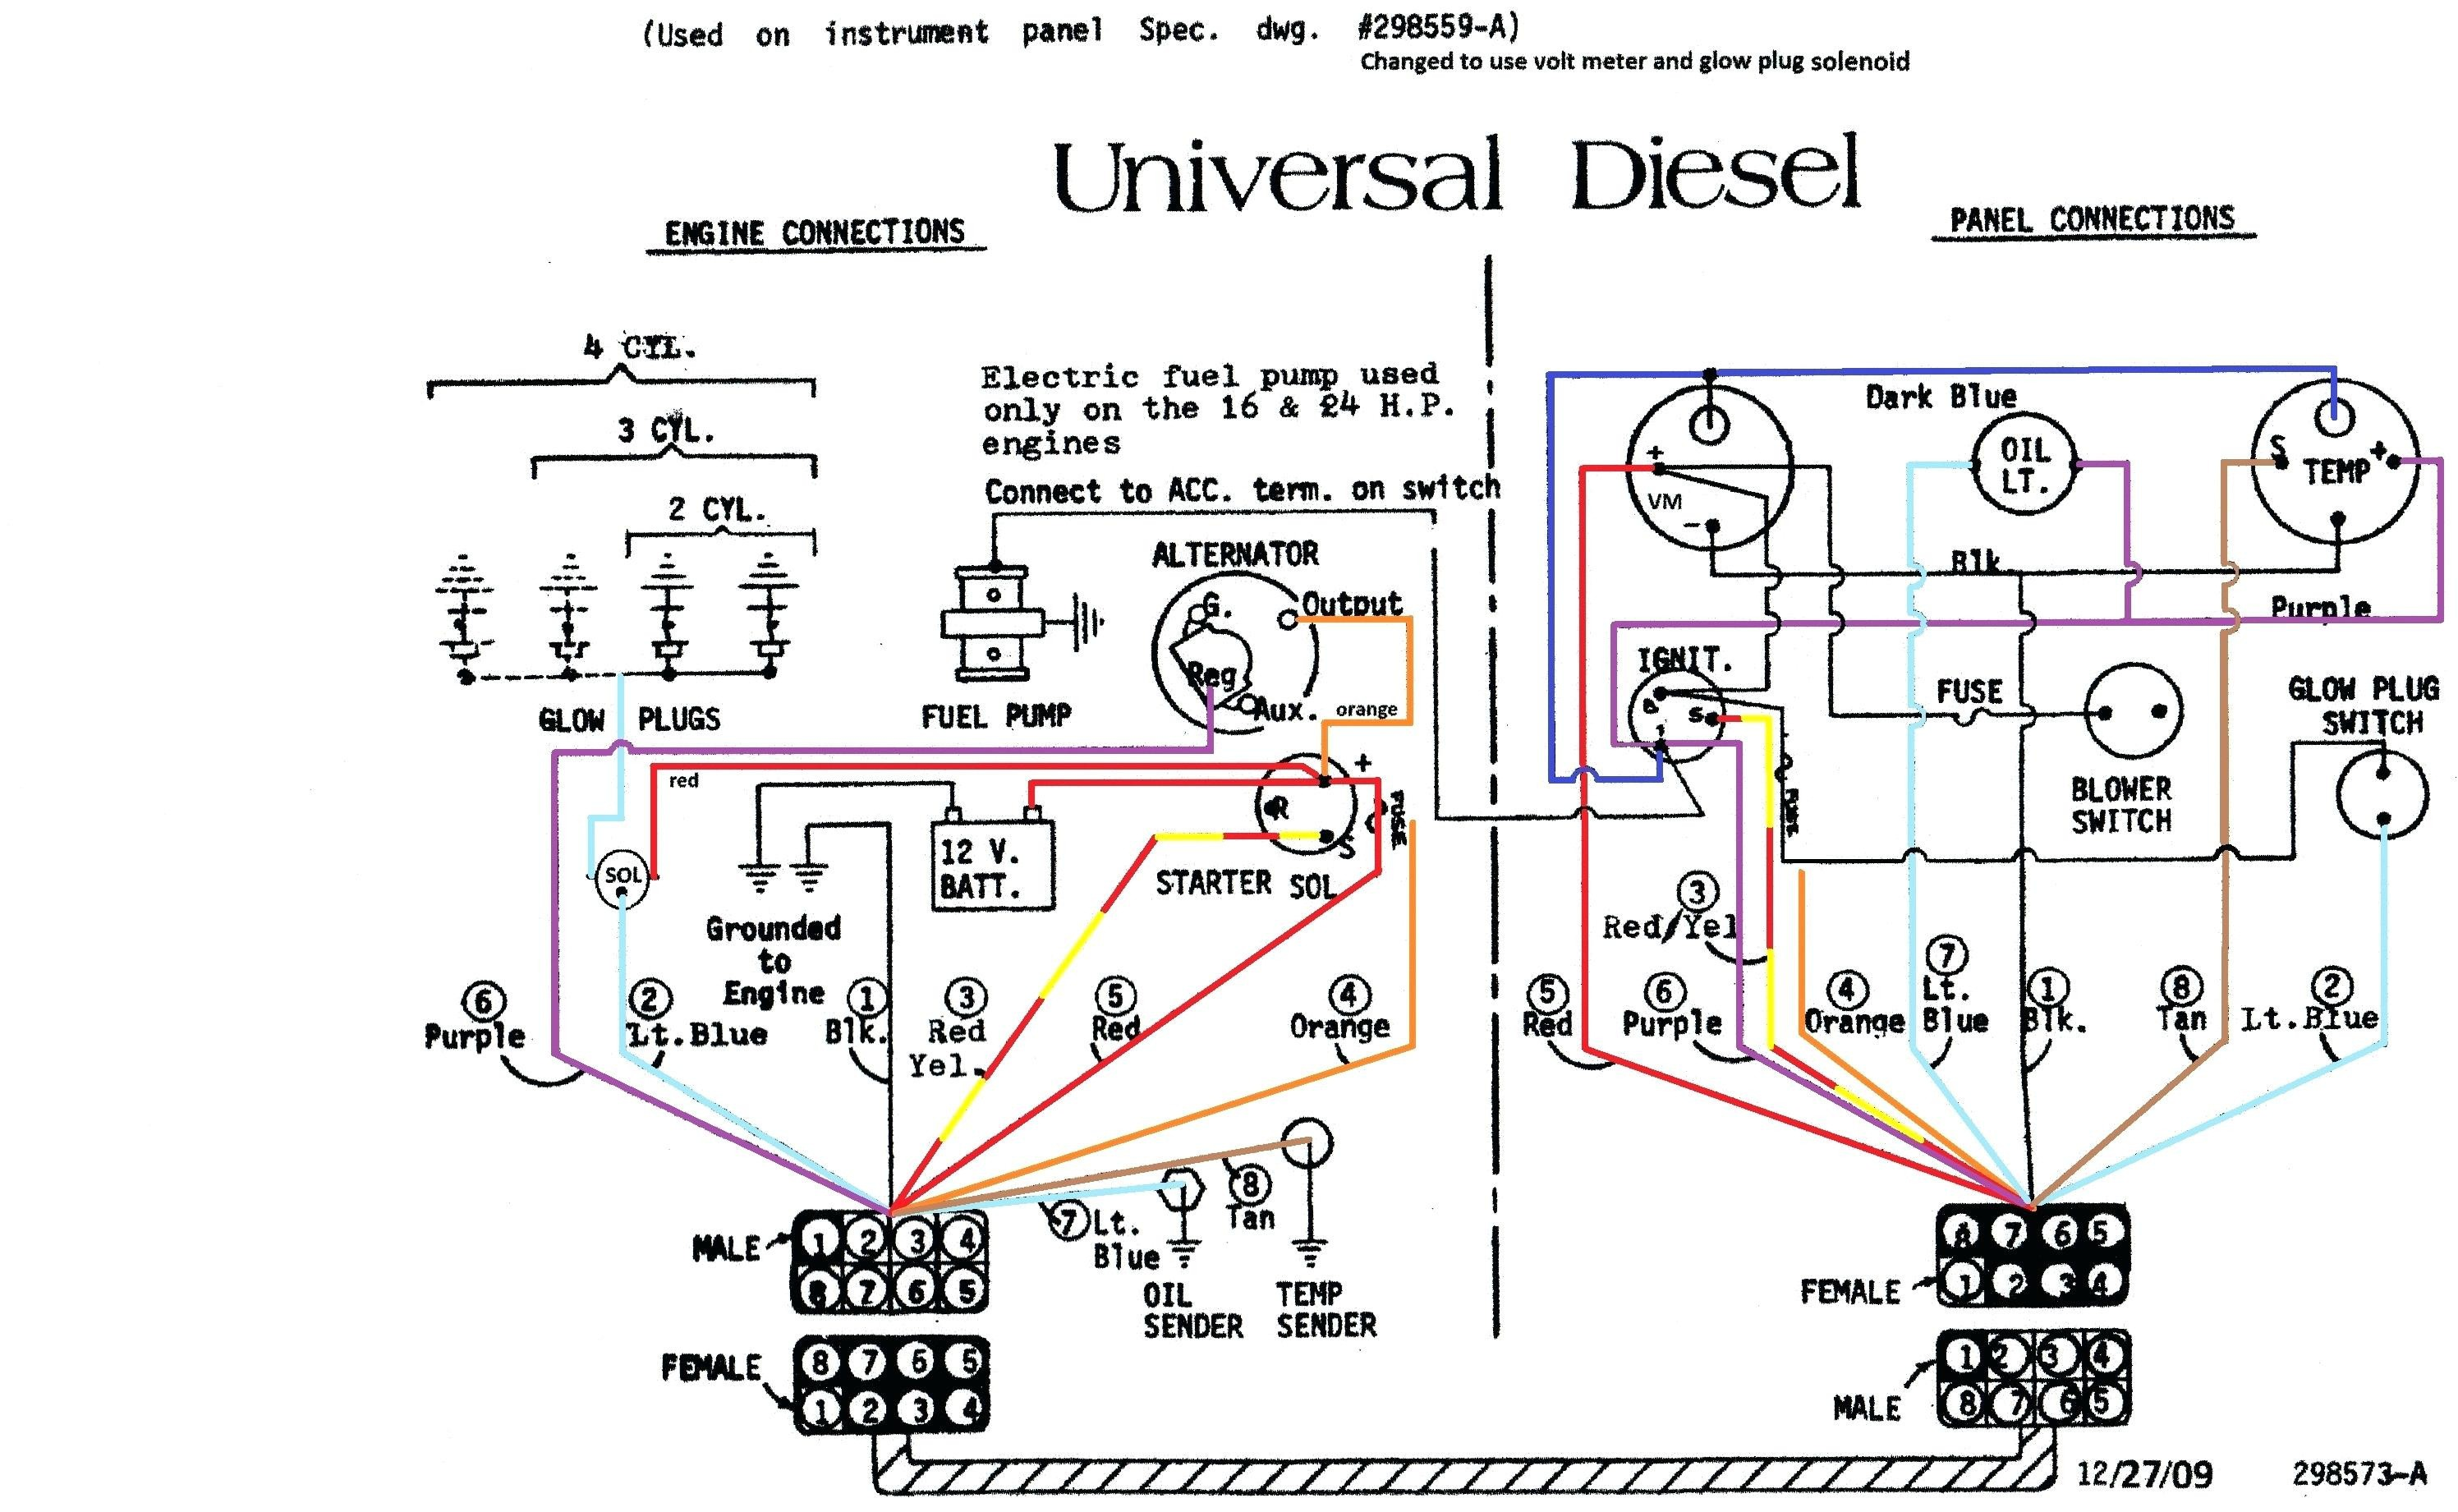 Camry Engine Diagram 1997 toyota Camry Engine Diagram Exploded View Of Camry  Engine Diagram Electrical Wiring